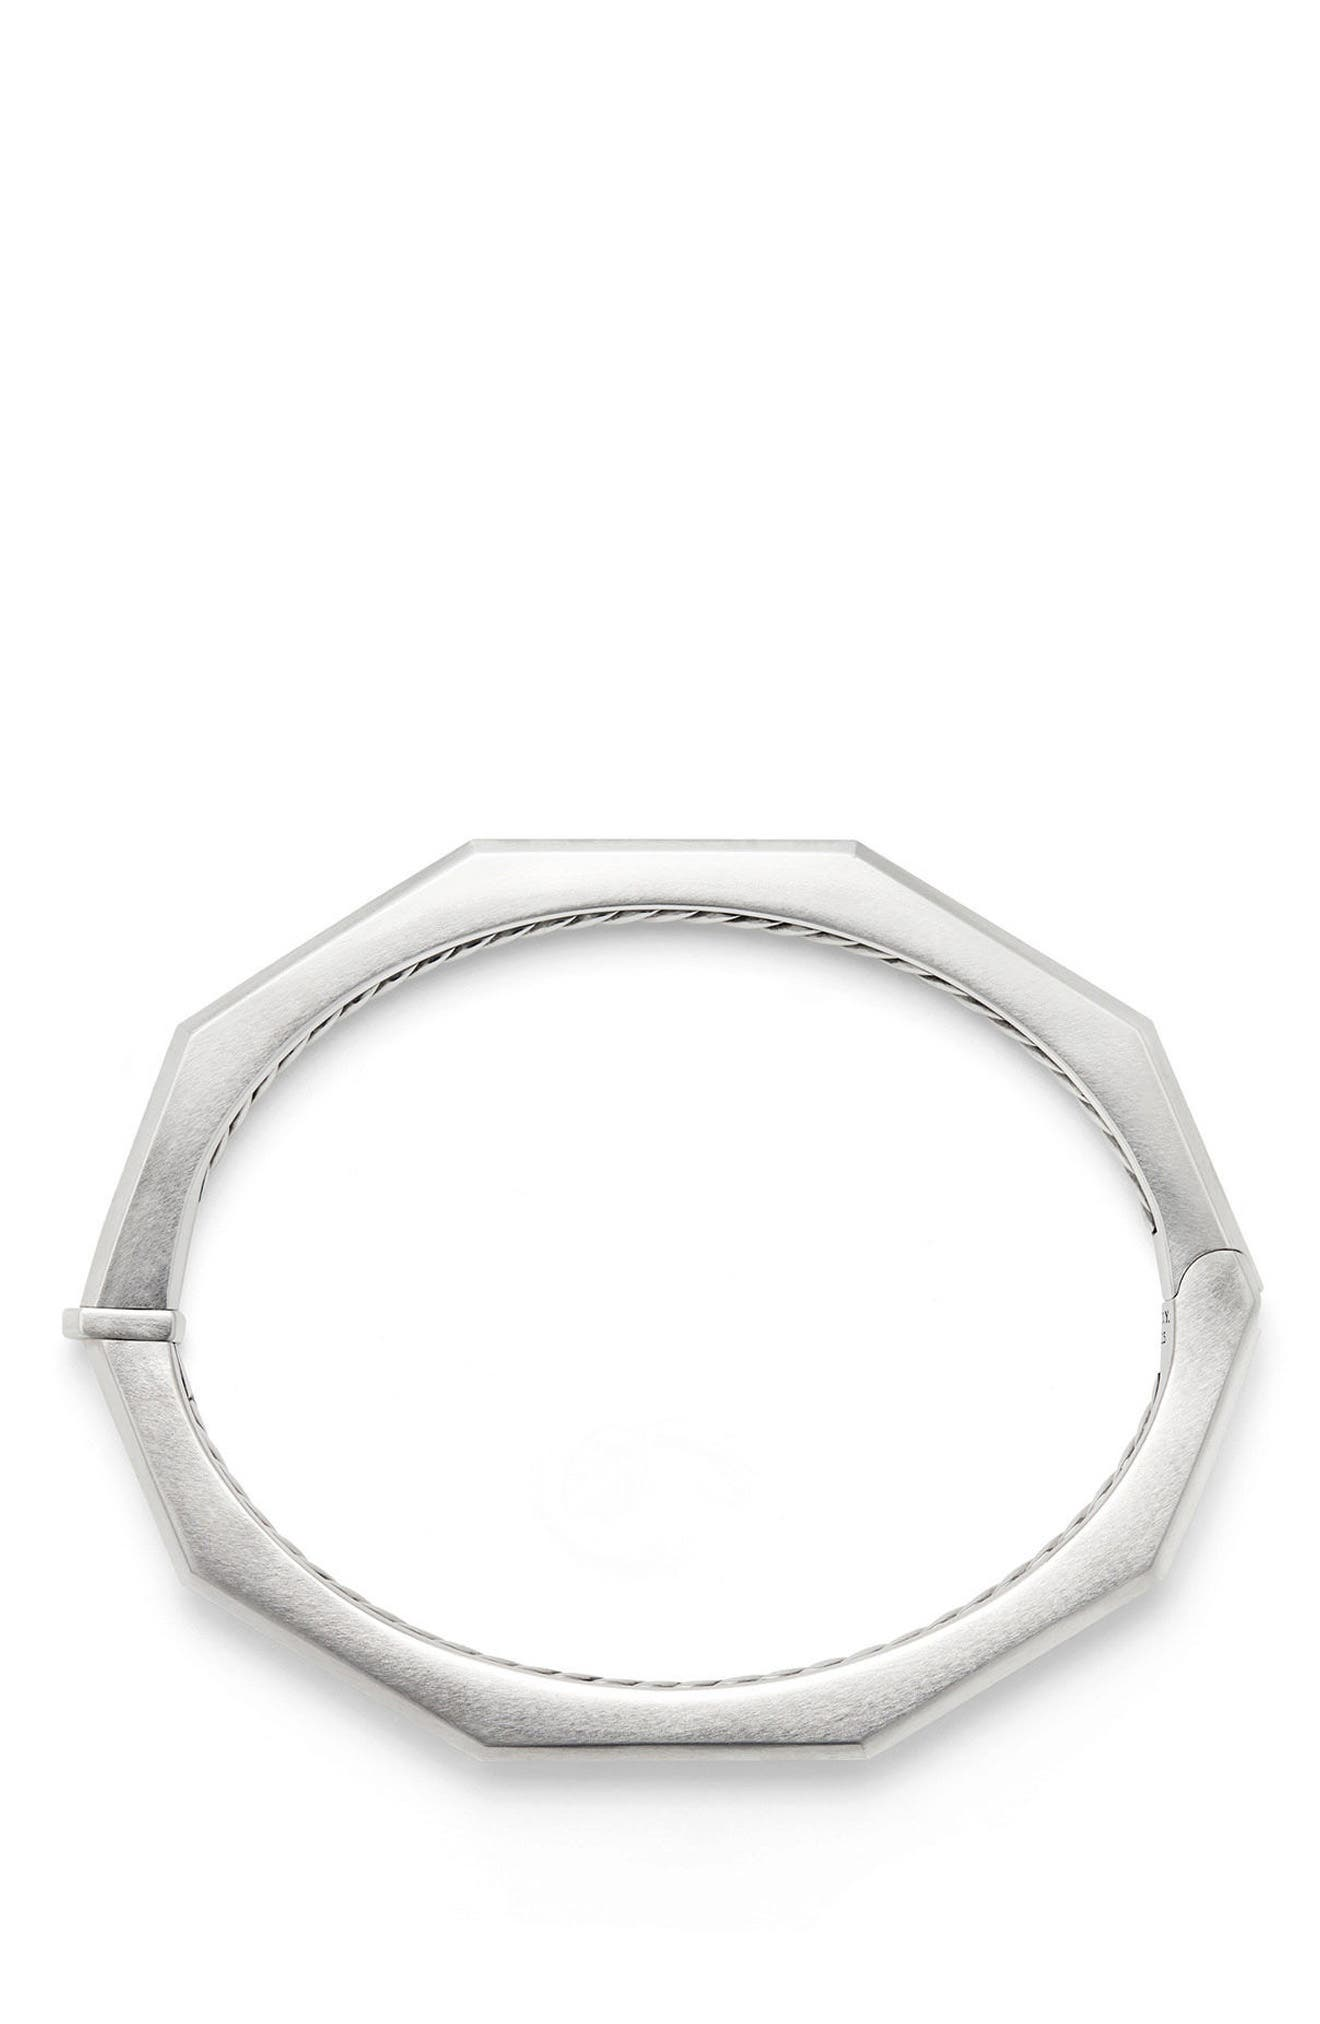 Stax Faceted Bracelet with Diamonds,                             Alternate thumbnail 2, color,                             SILVER